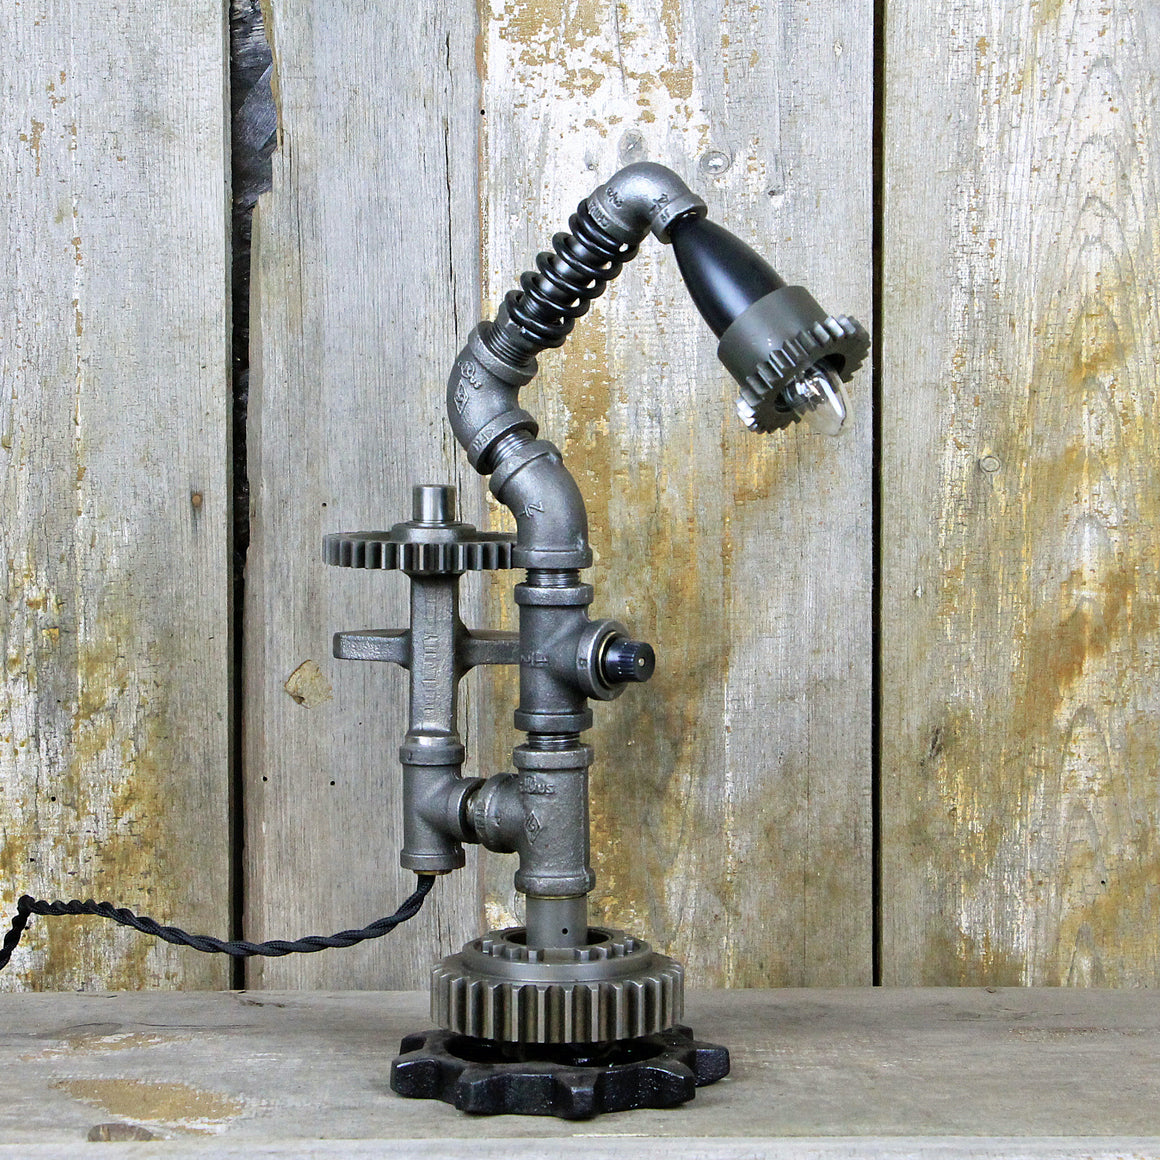 Industrial Table Lamp with Steampunk Gears - A Great Example of Industrial Lighting #94 - The Lighting Works